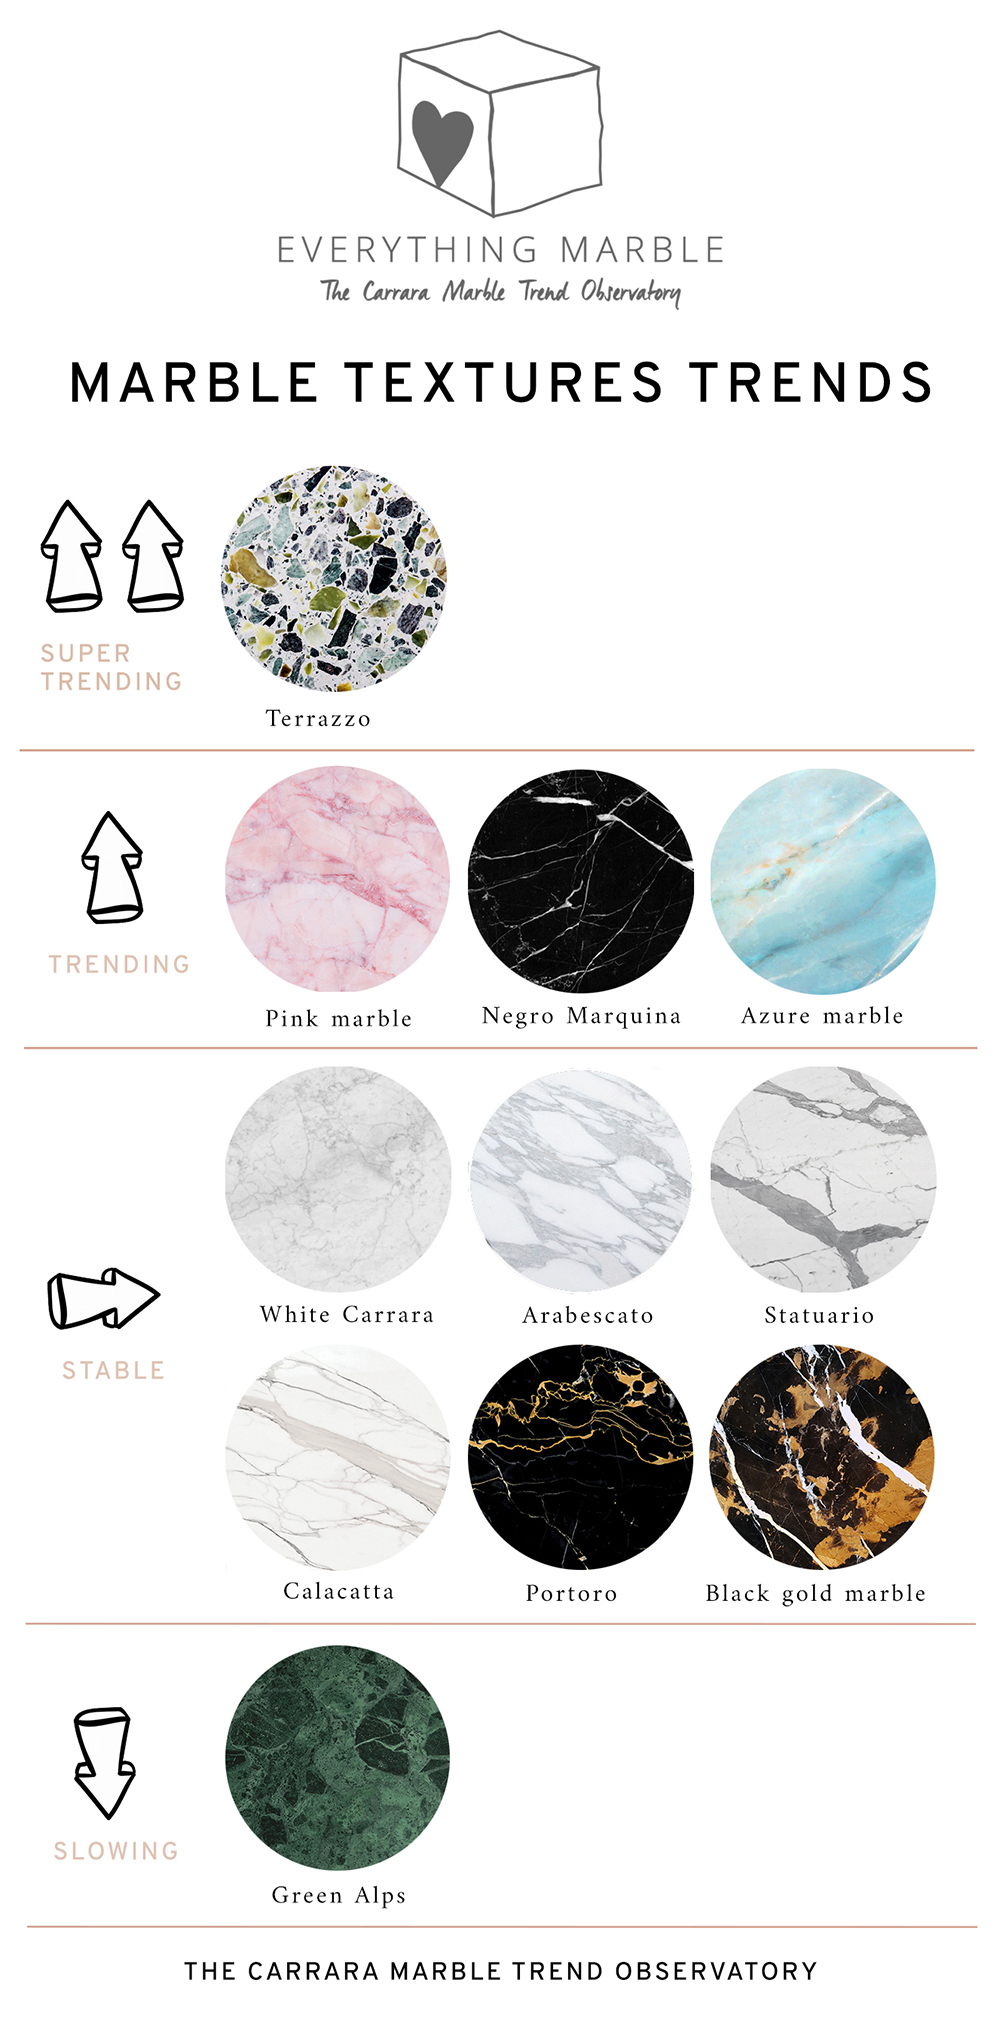 Marble textures trends for product design according to EVERYTHING MARBLE, The Carrara marble Trend Observatory